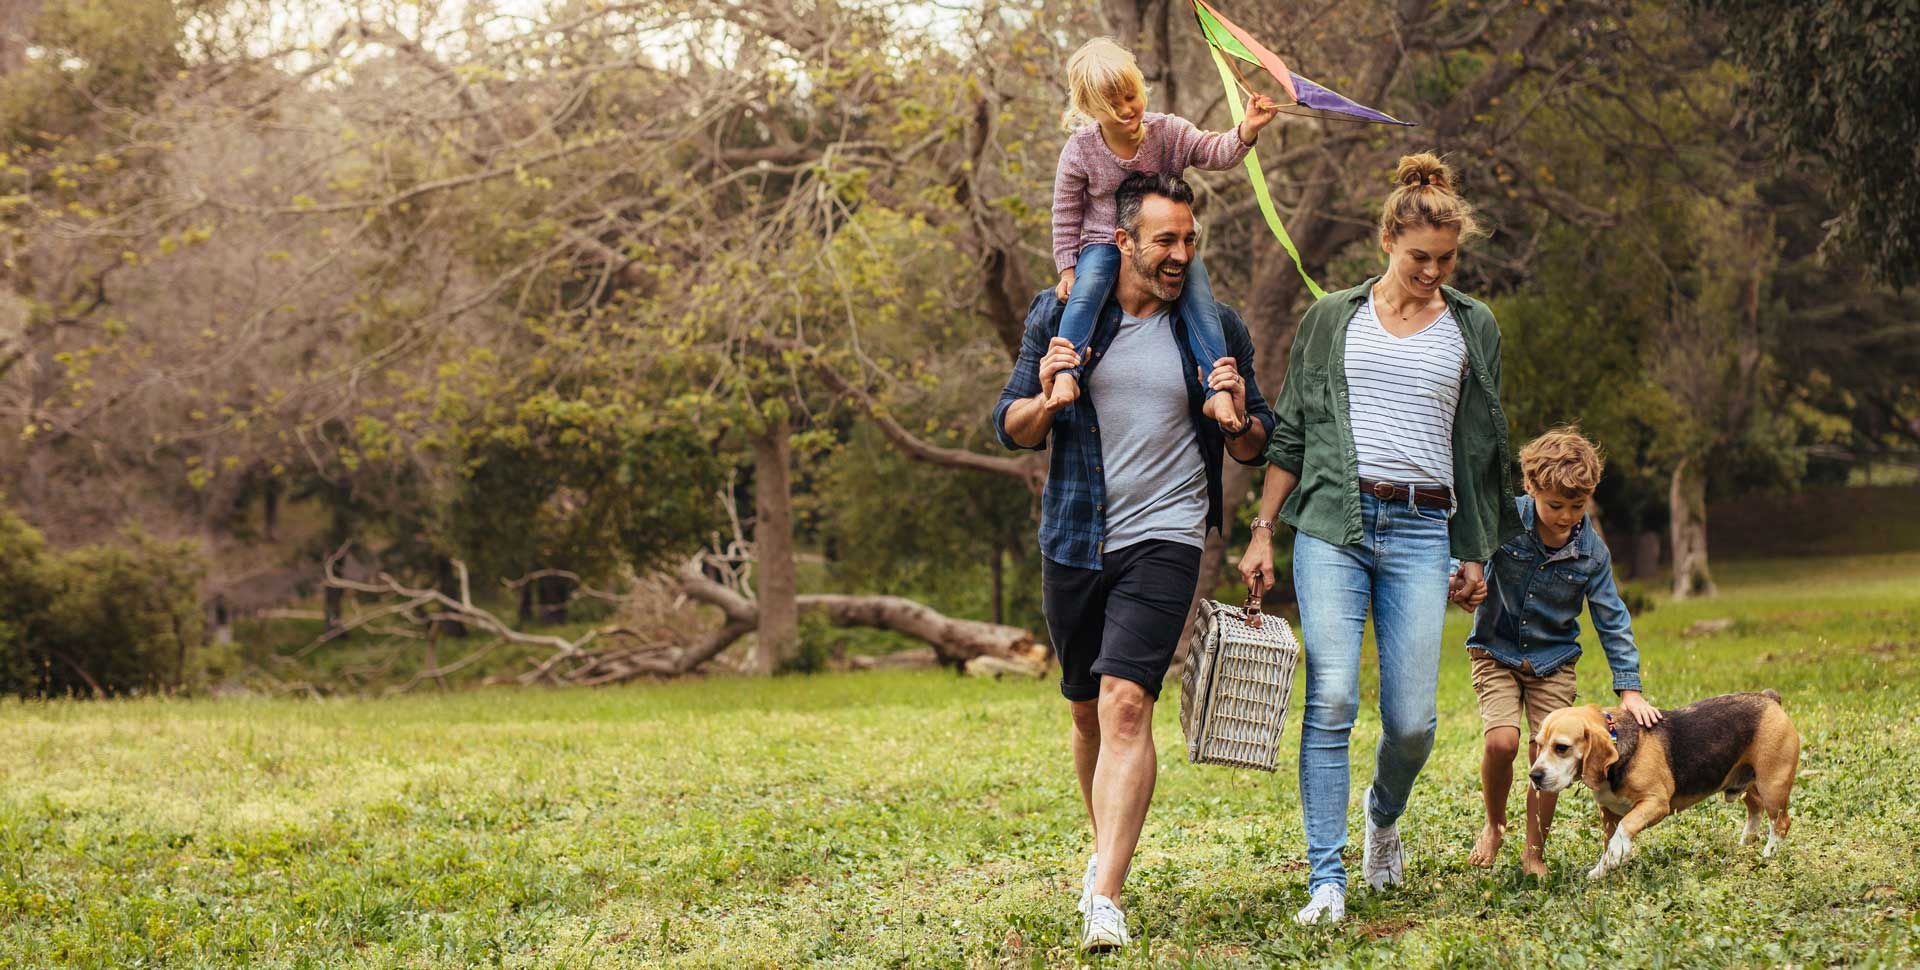 Family walking in meadow with dog and picnic basket